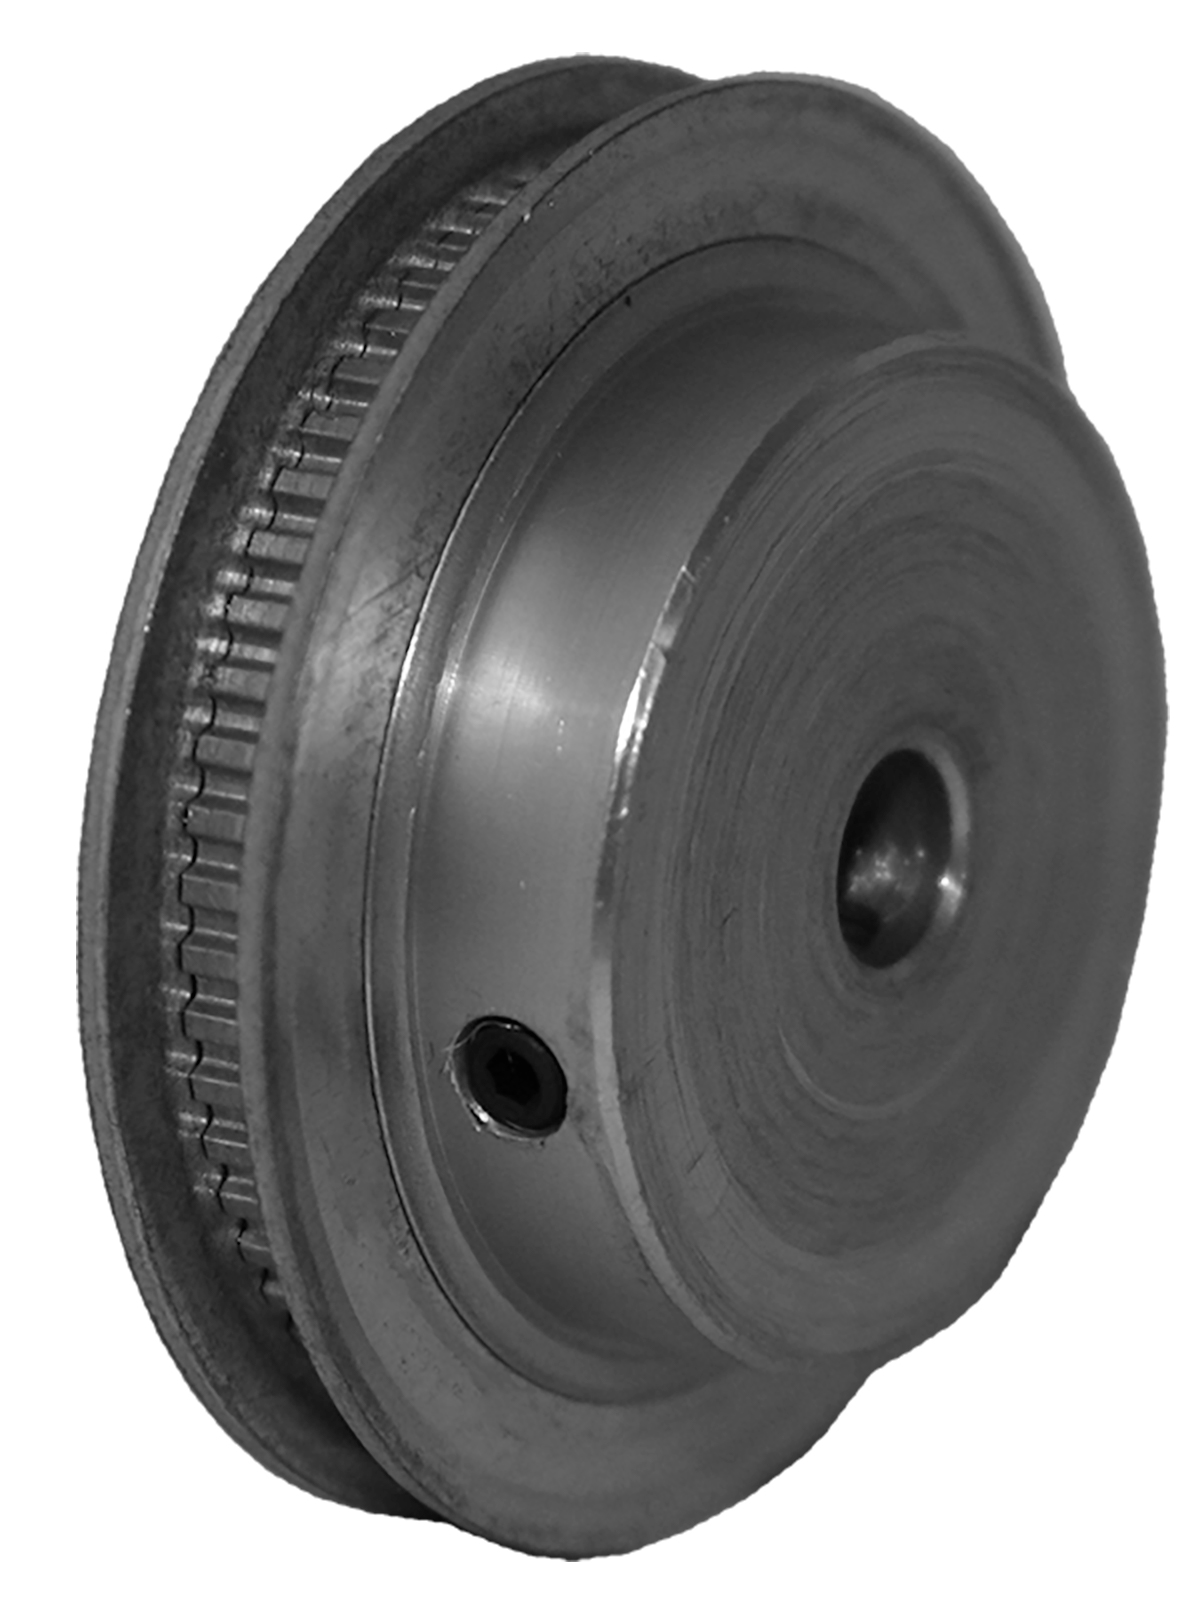 60MP012-6FA3 - Aluminum Imperial Pitch Pulleys